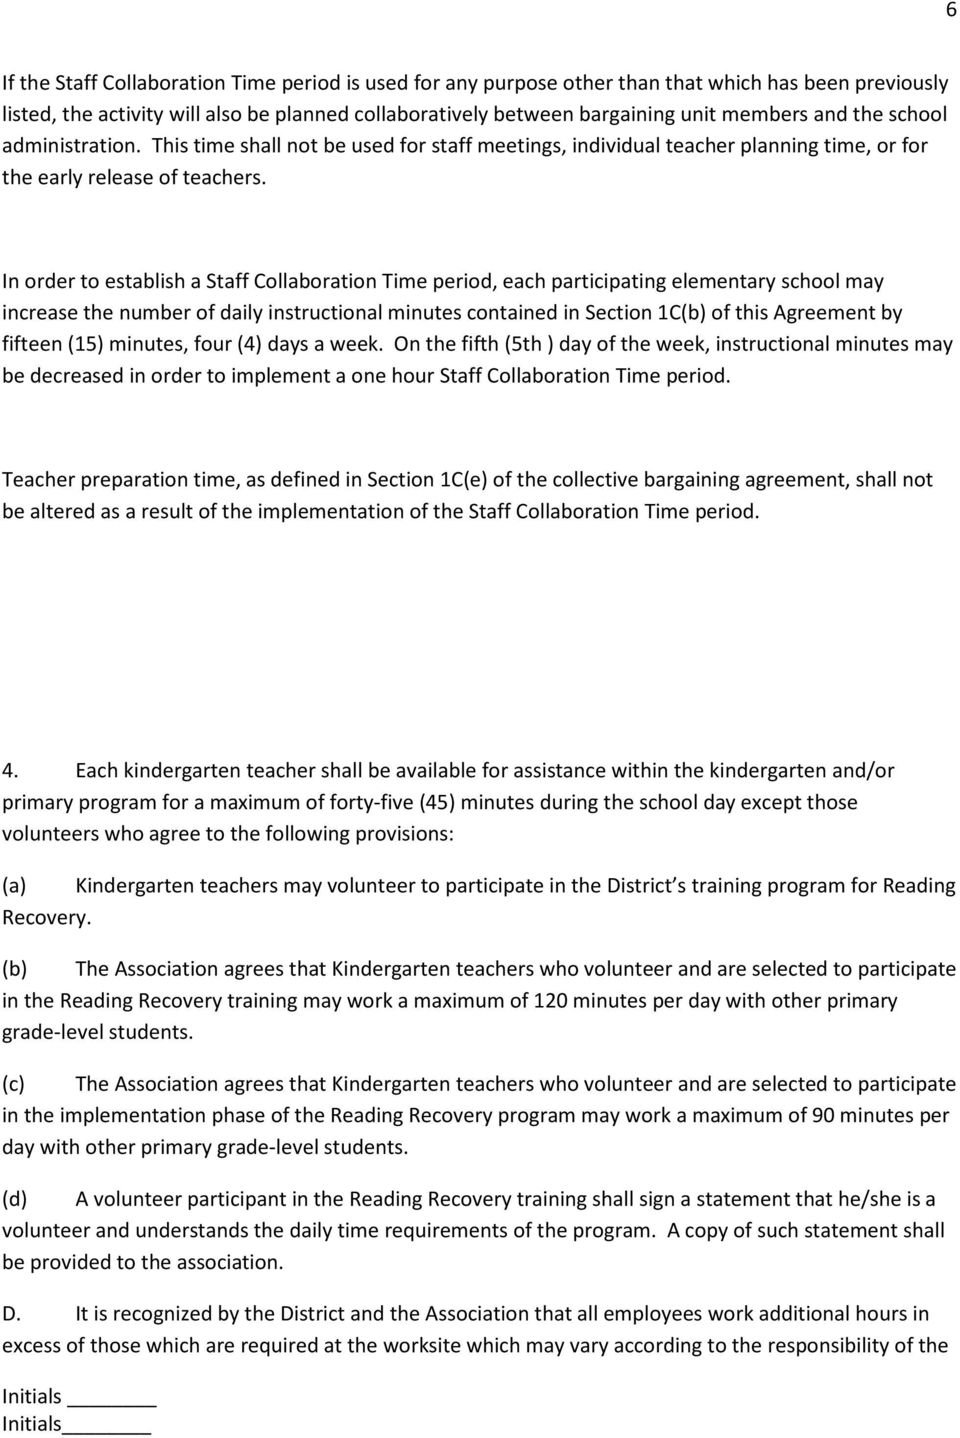 In order to establish a Staff Collaboration Time period, each participating elementary school may increase the number of daily instructional minutes contained in Section 1C(b) of this Agreement by